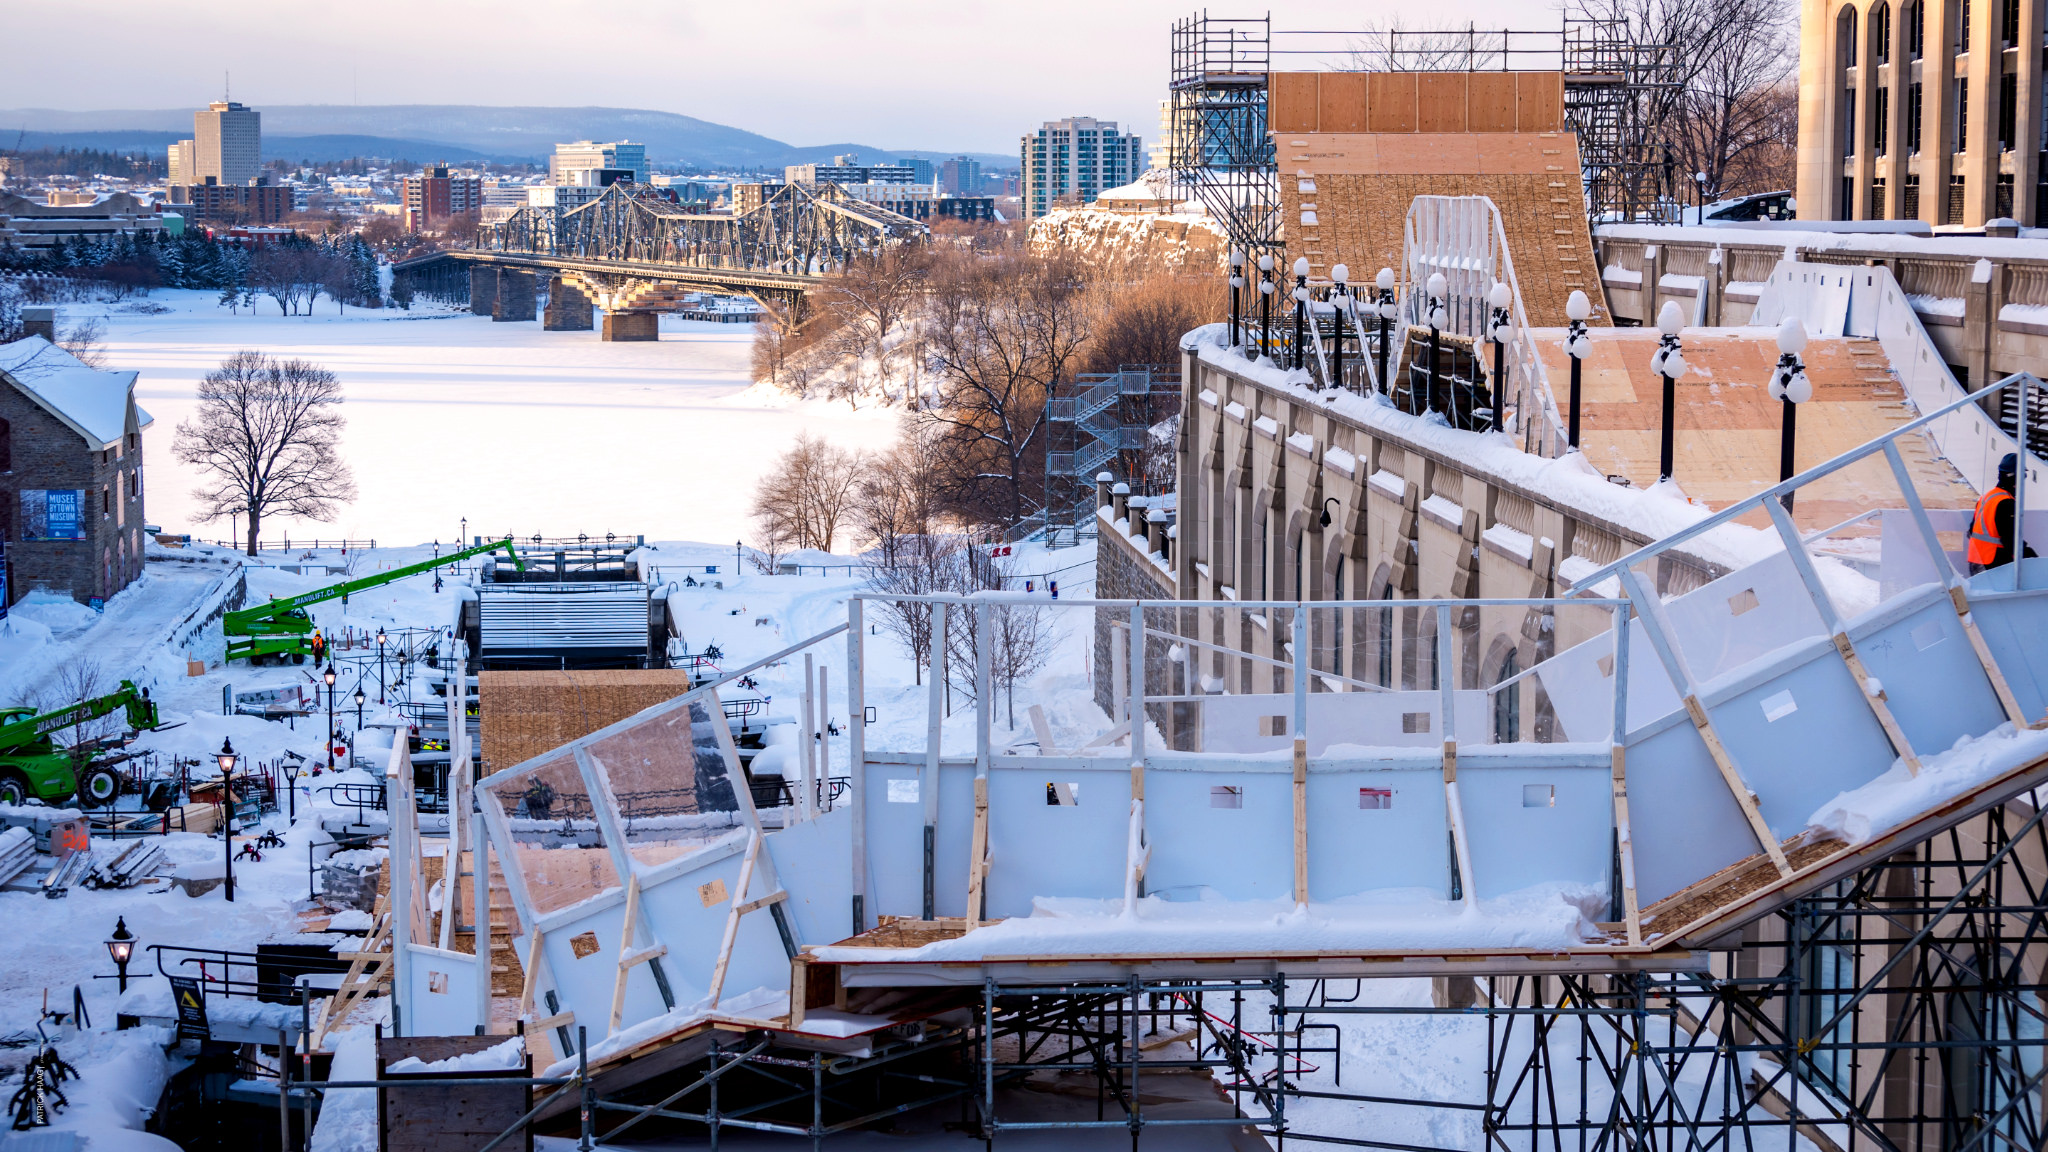 LP Teams Up With SFI to Donate OSB for Ottawa Red Bull Crashed Ice Event